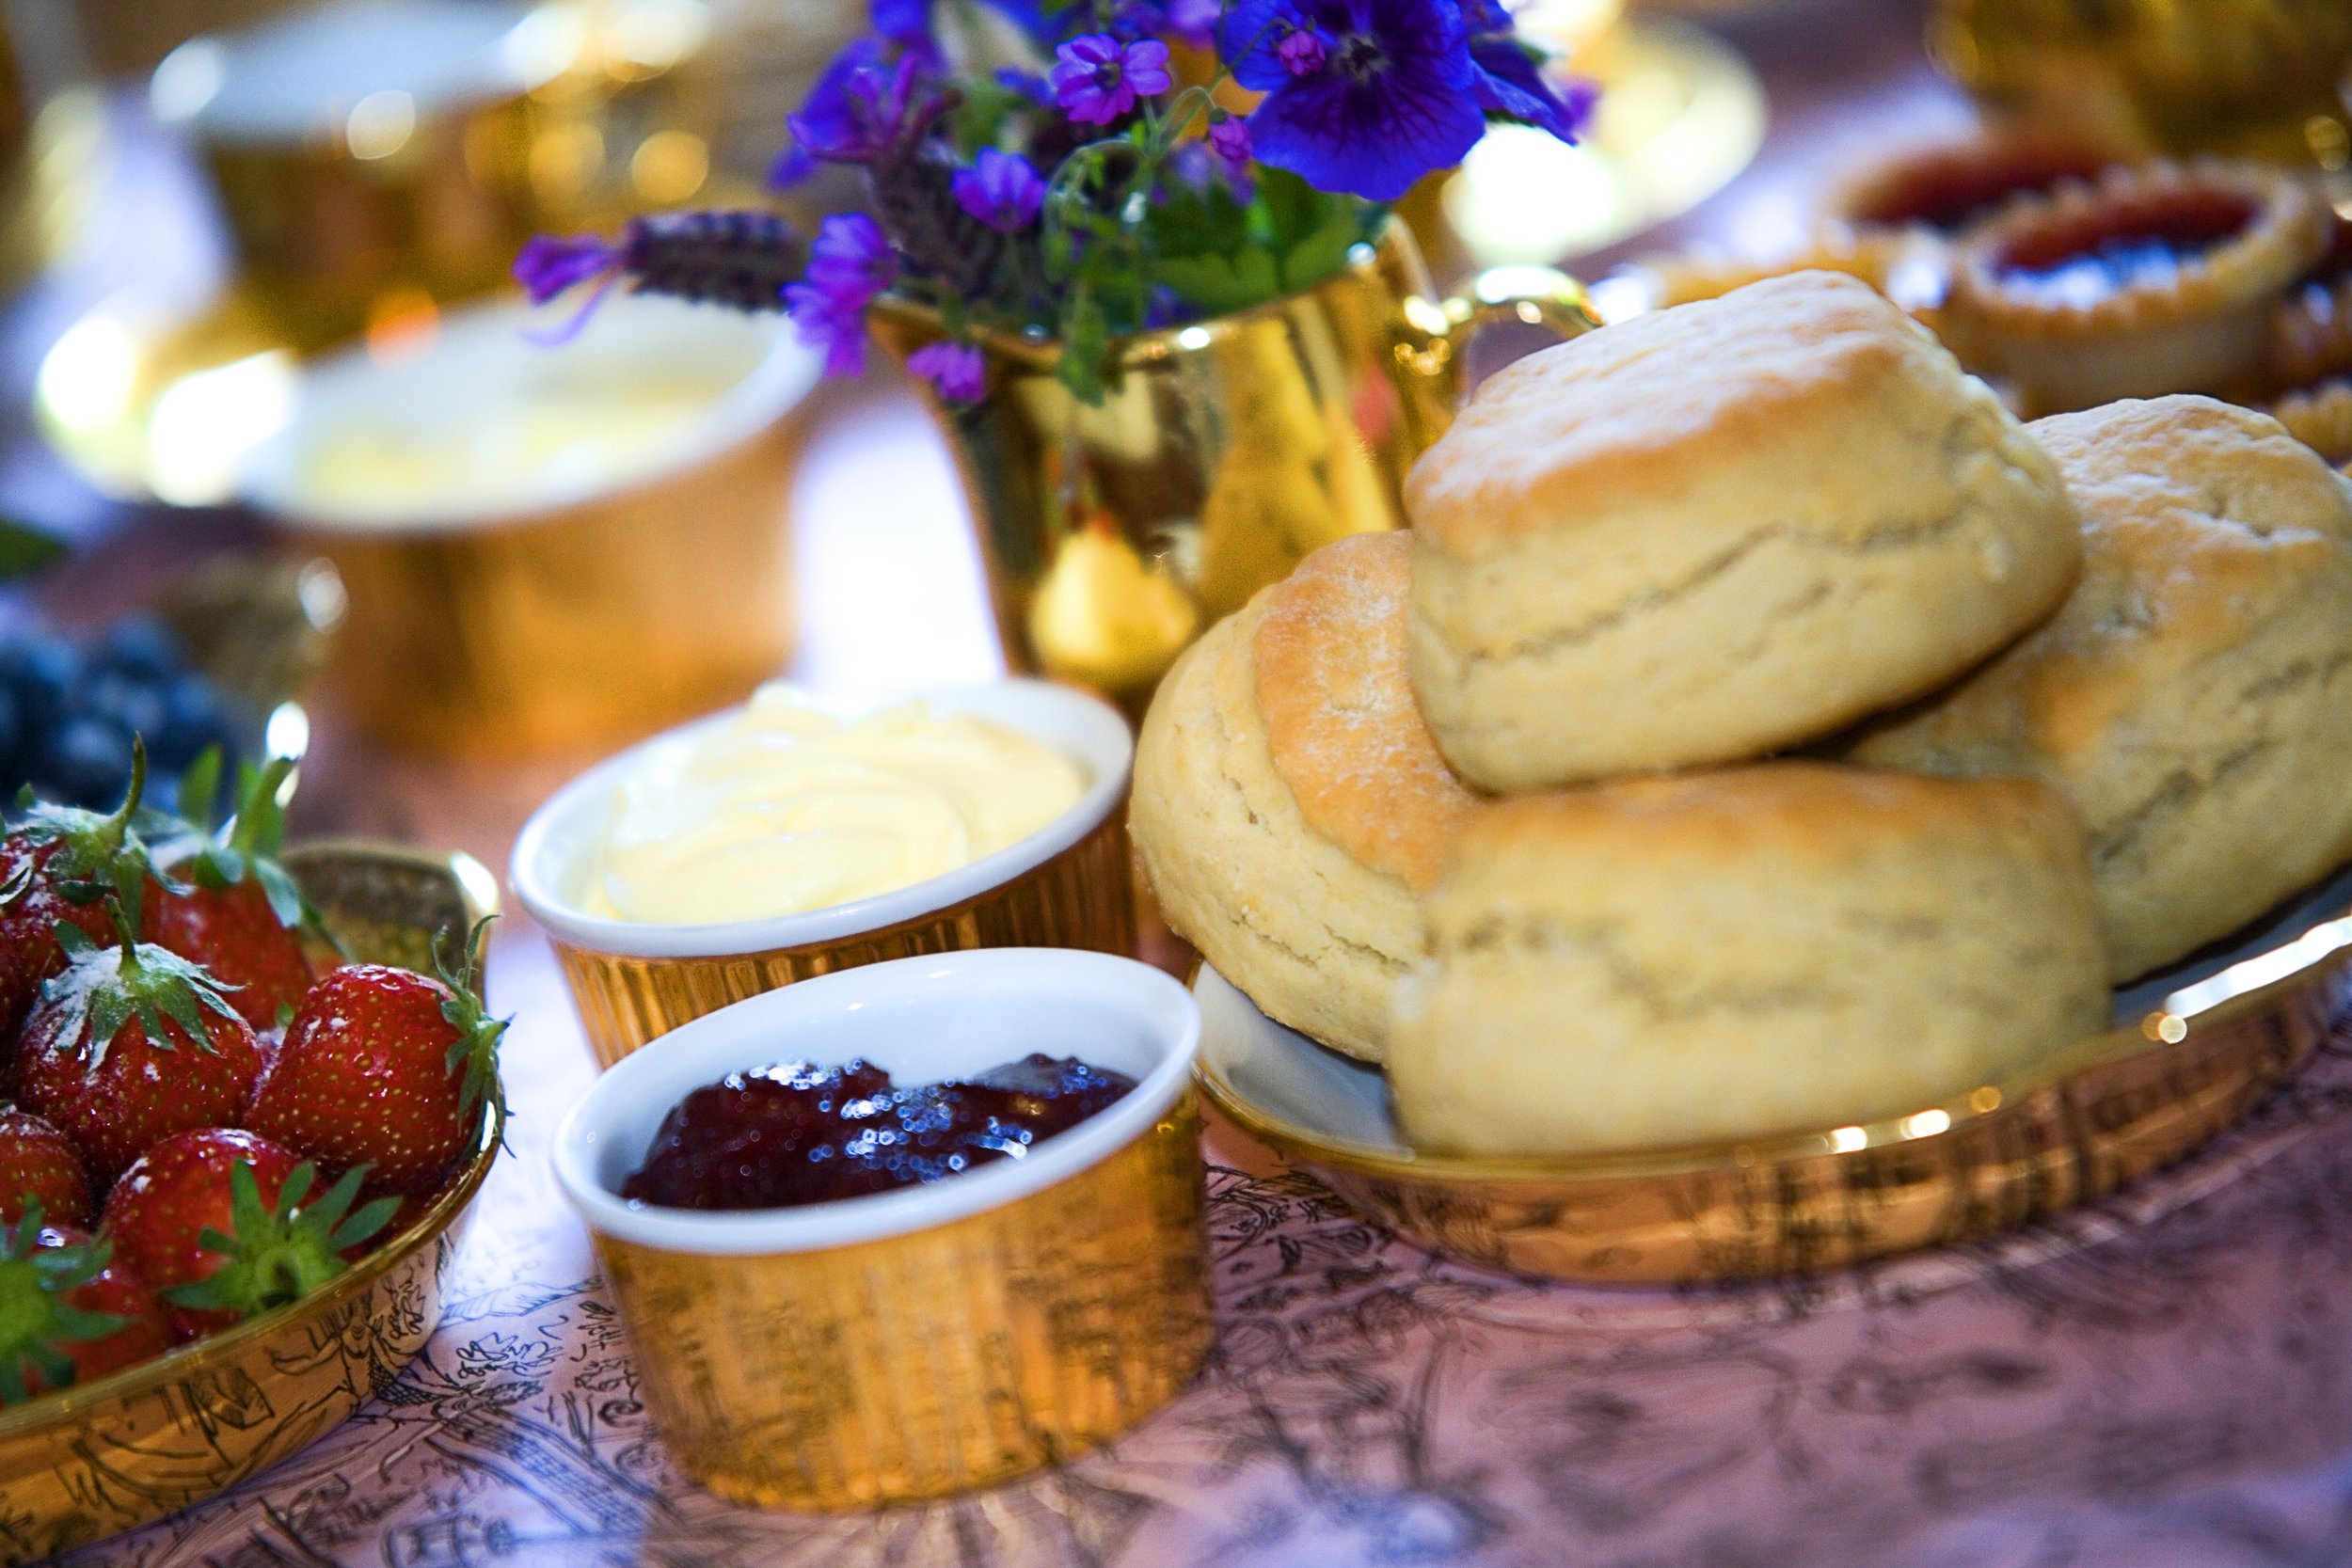 Catering & locally produced artisan food at Mill End by Bordello Banquets - afternoon cream tea